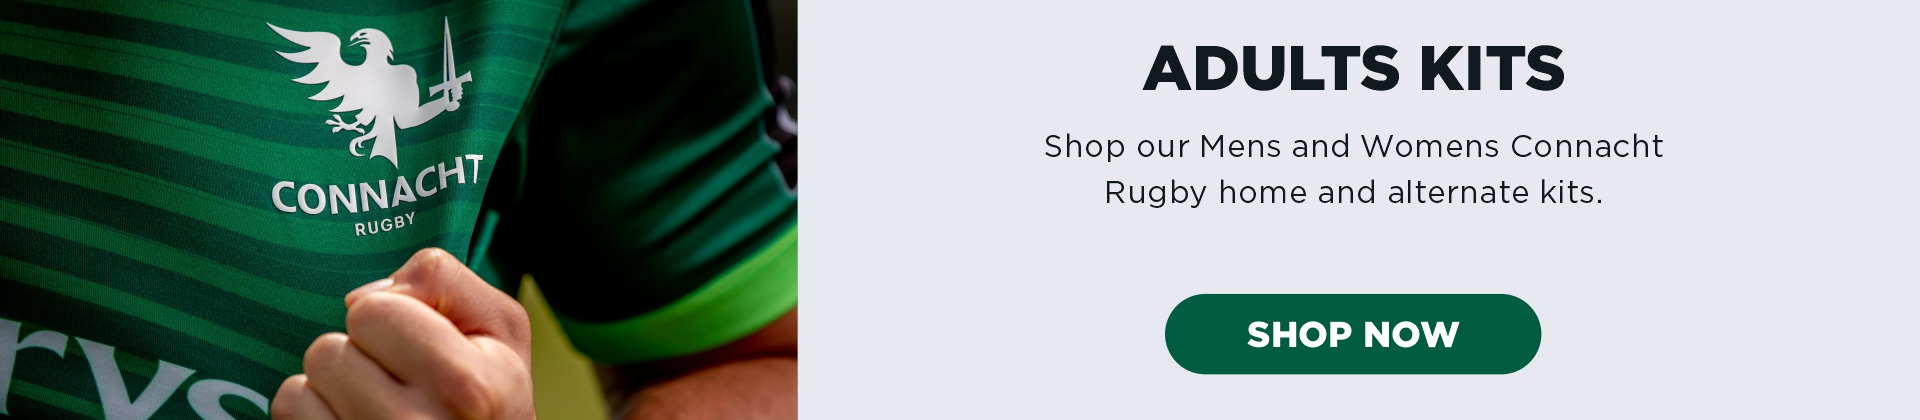 Elverys_Connacht_Rugby_Adult_Kits_1920x420.jpg